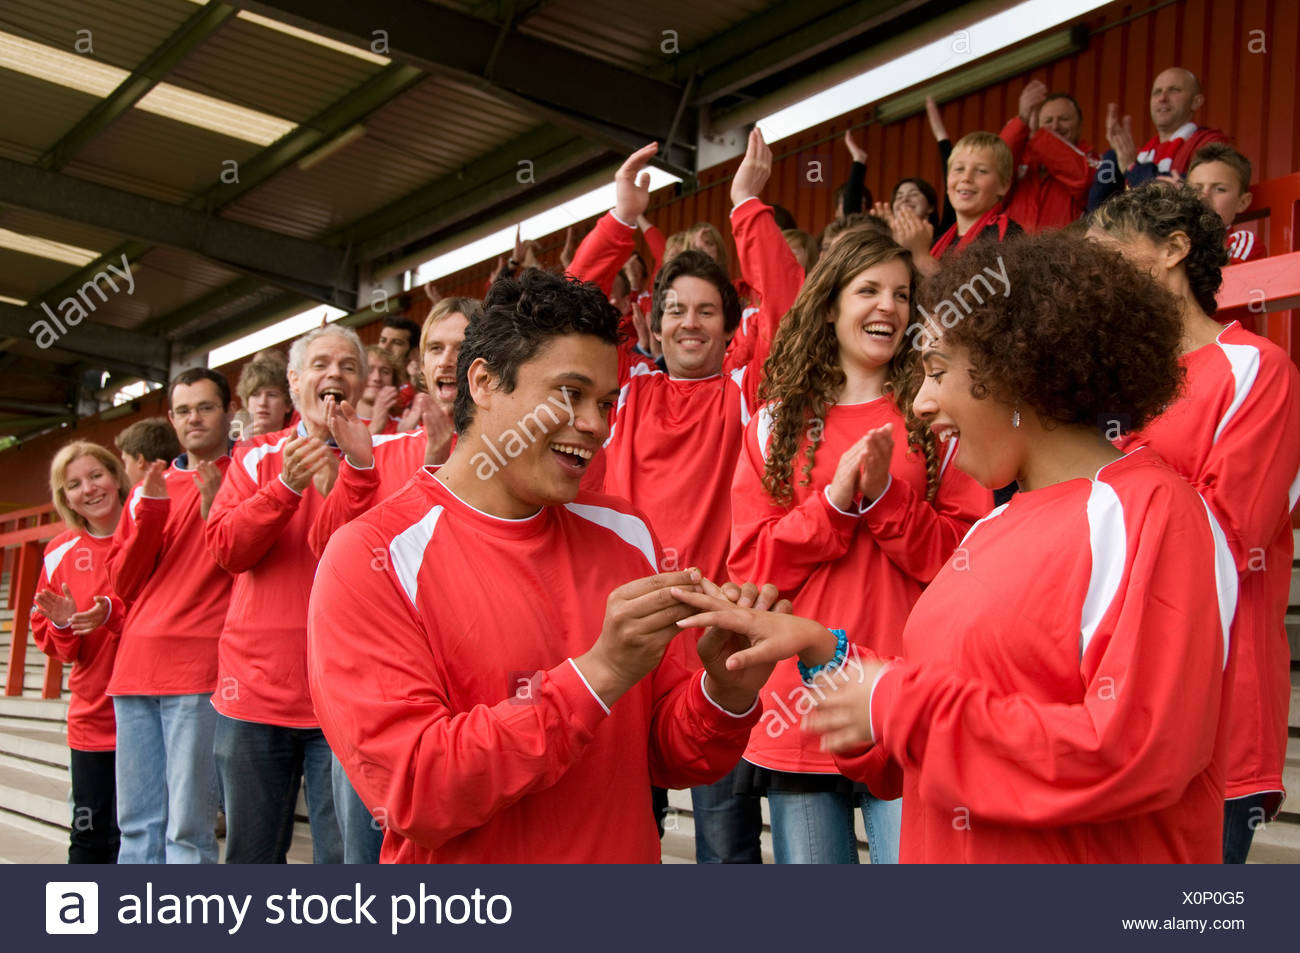 Marriage proposal at football match - Stock Image